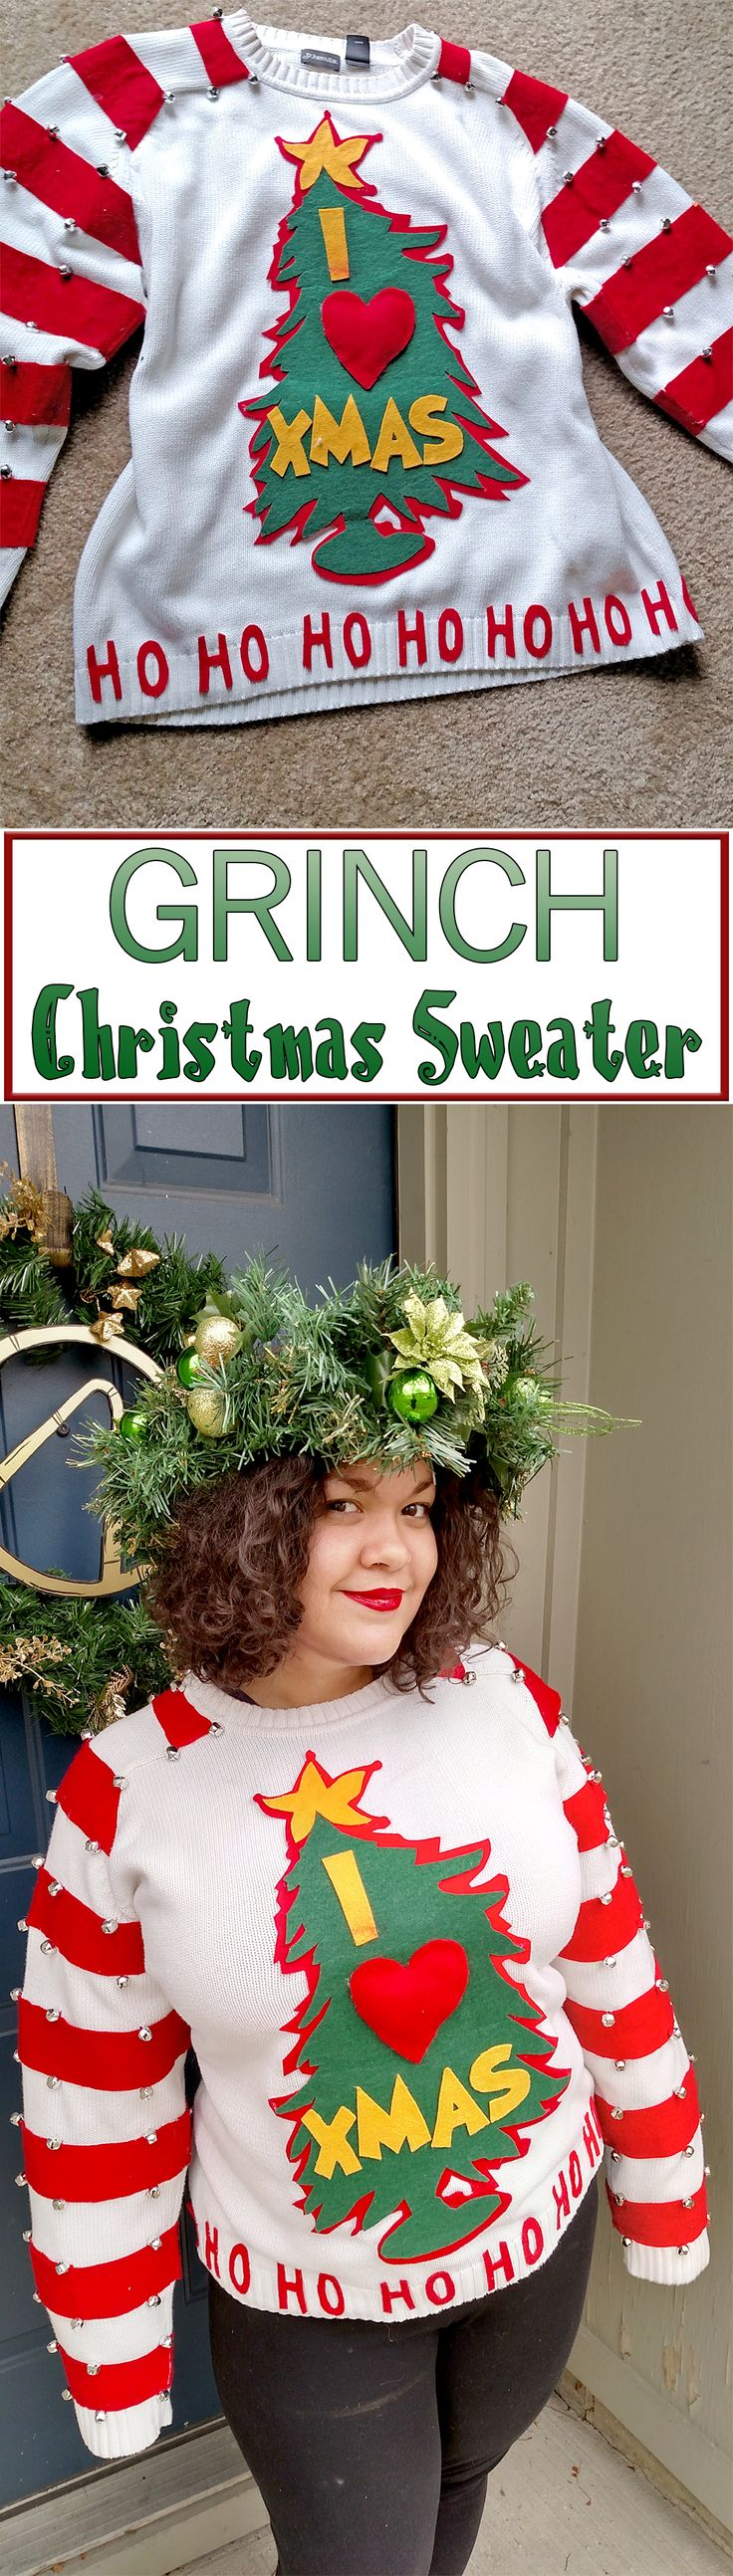 Celebrate Christmas Grinch-style with this fun sweater!